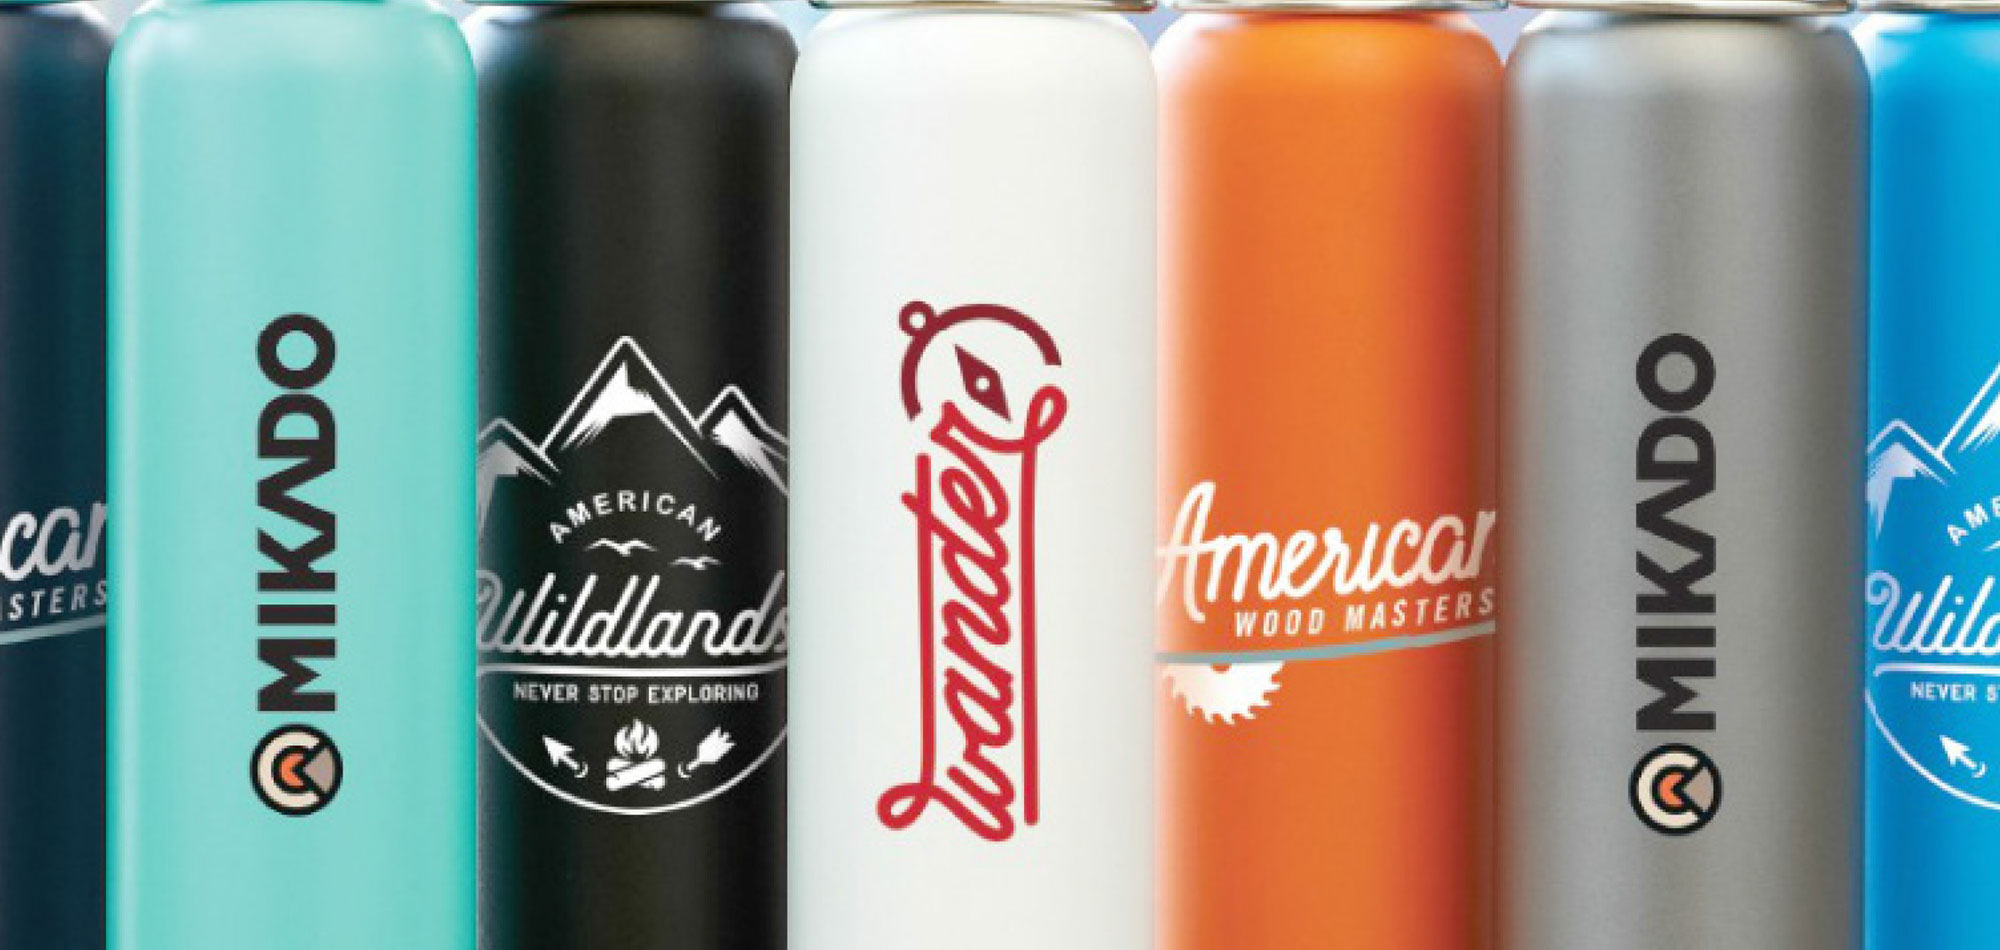 Why water bottles are still some of the hottest (and coolest) promotional items.